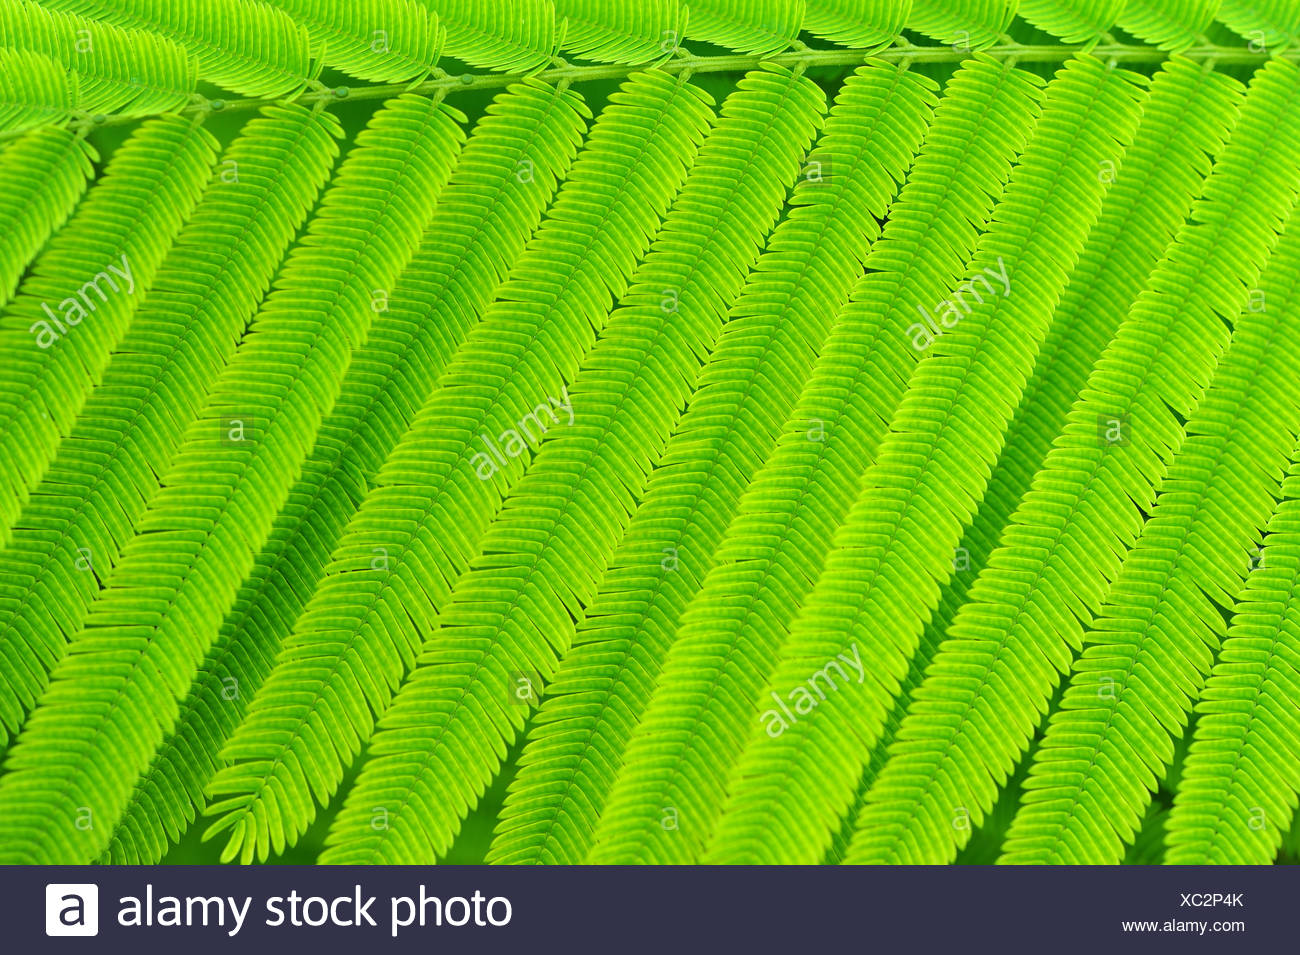 Acacia Leaves Stock Photo 282803043 Alamy